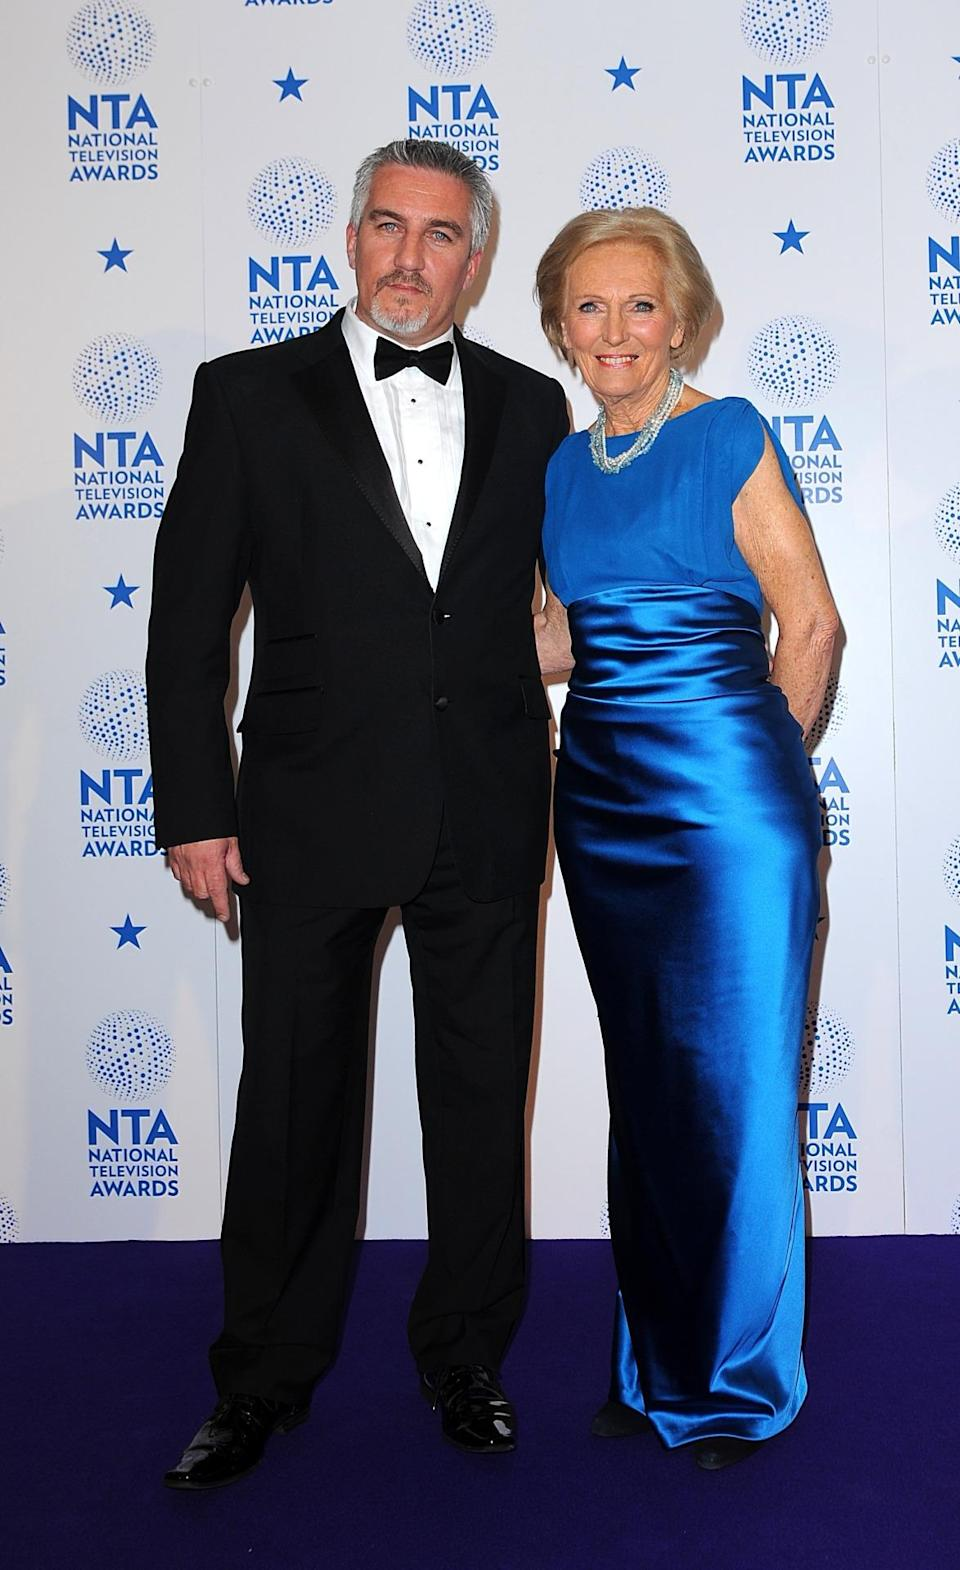 <p>Mary's stunning red carpet look (or blue carpet in this case) consisted of a royal blue satin dress. </p><p><i>[Photo: PA]</i></p>